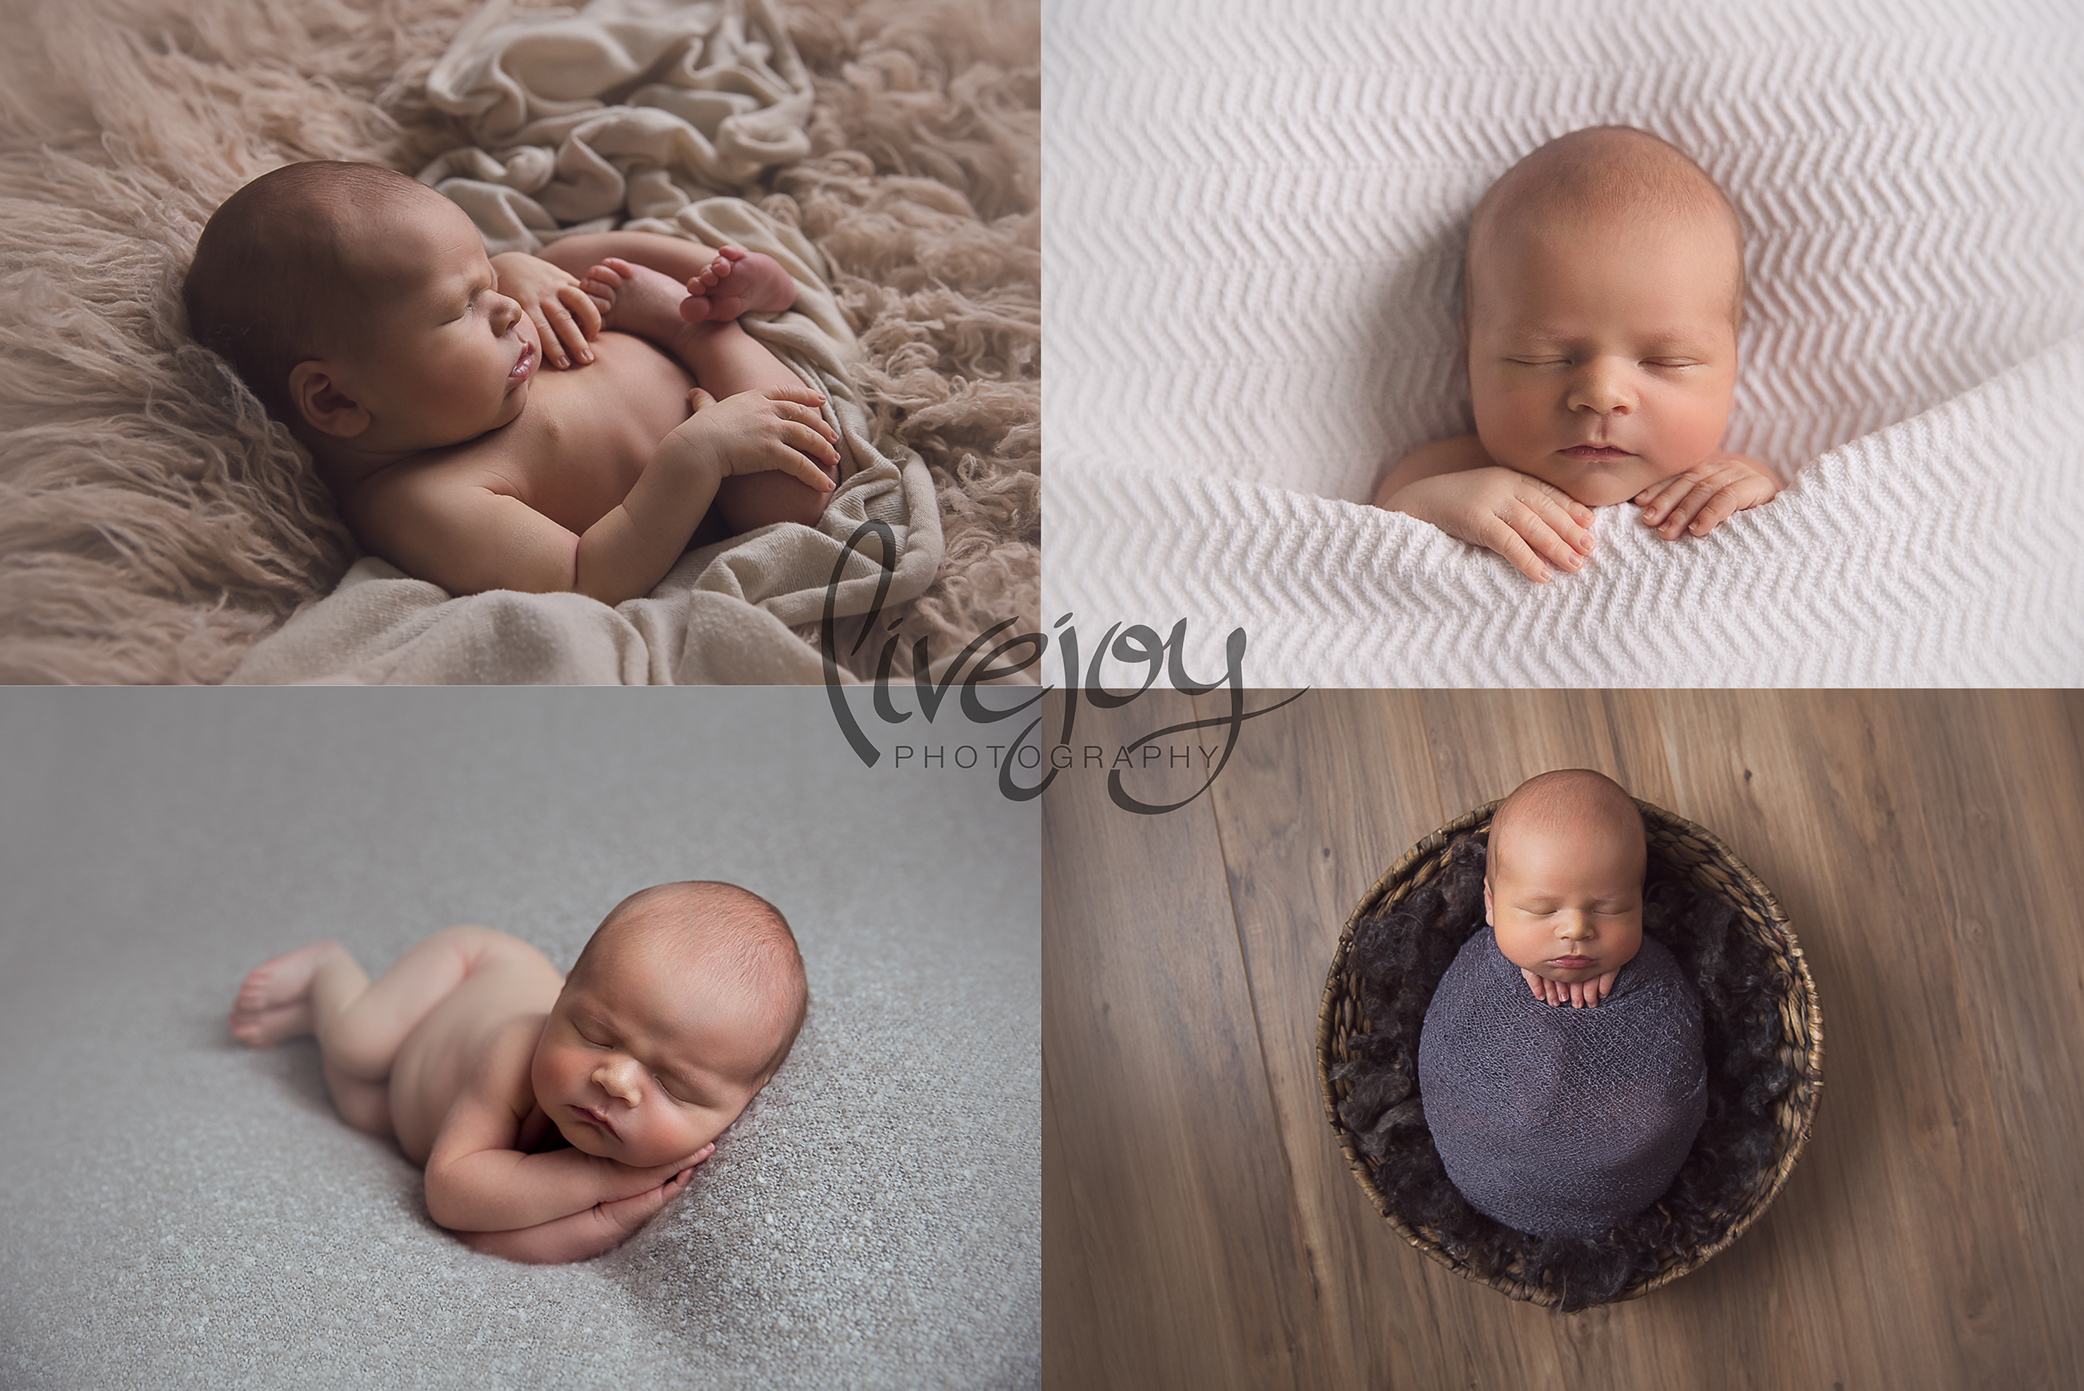 Baby Boy Newborn Photos | Oregon | LiveJoy Photography